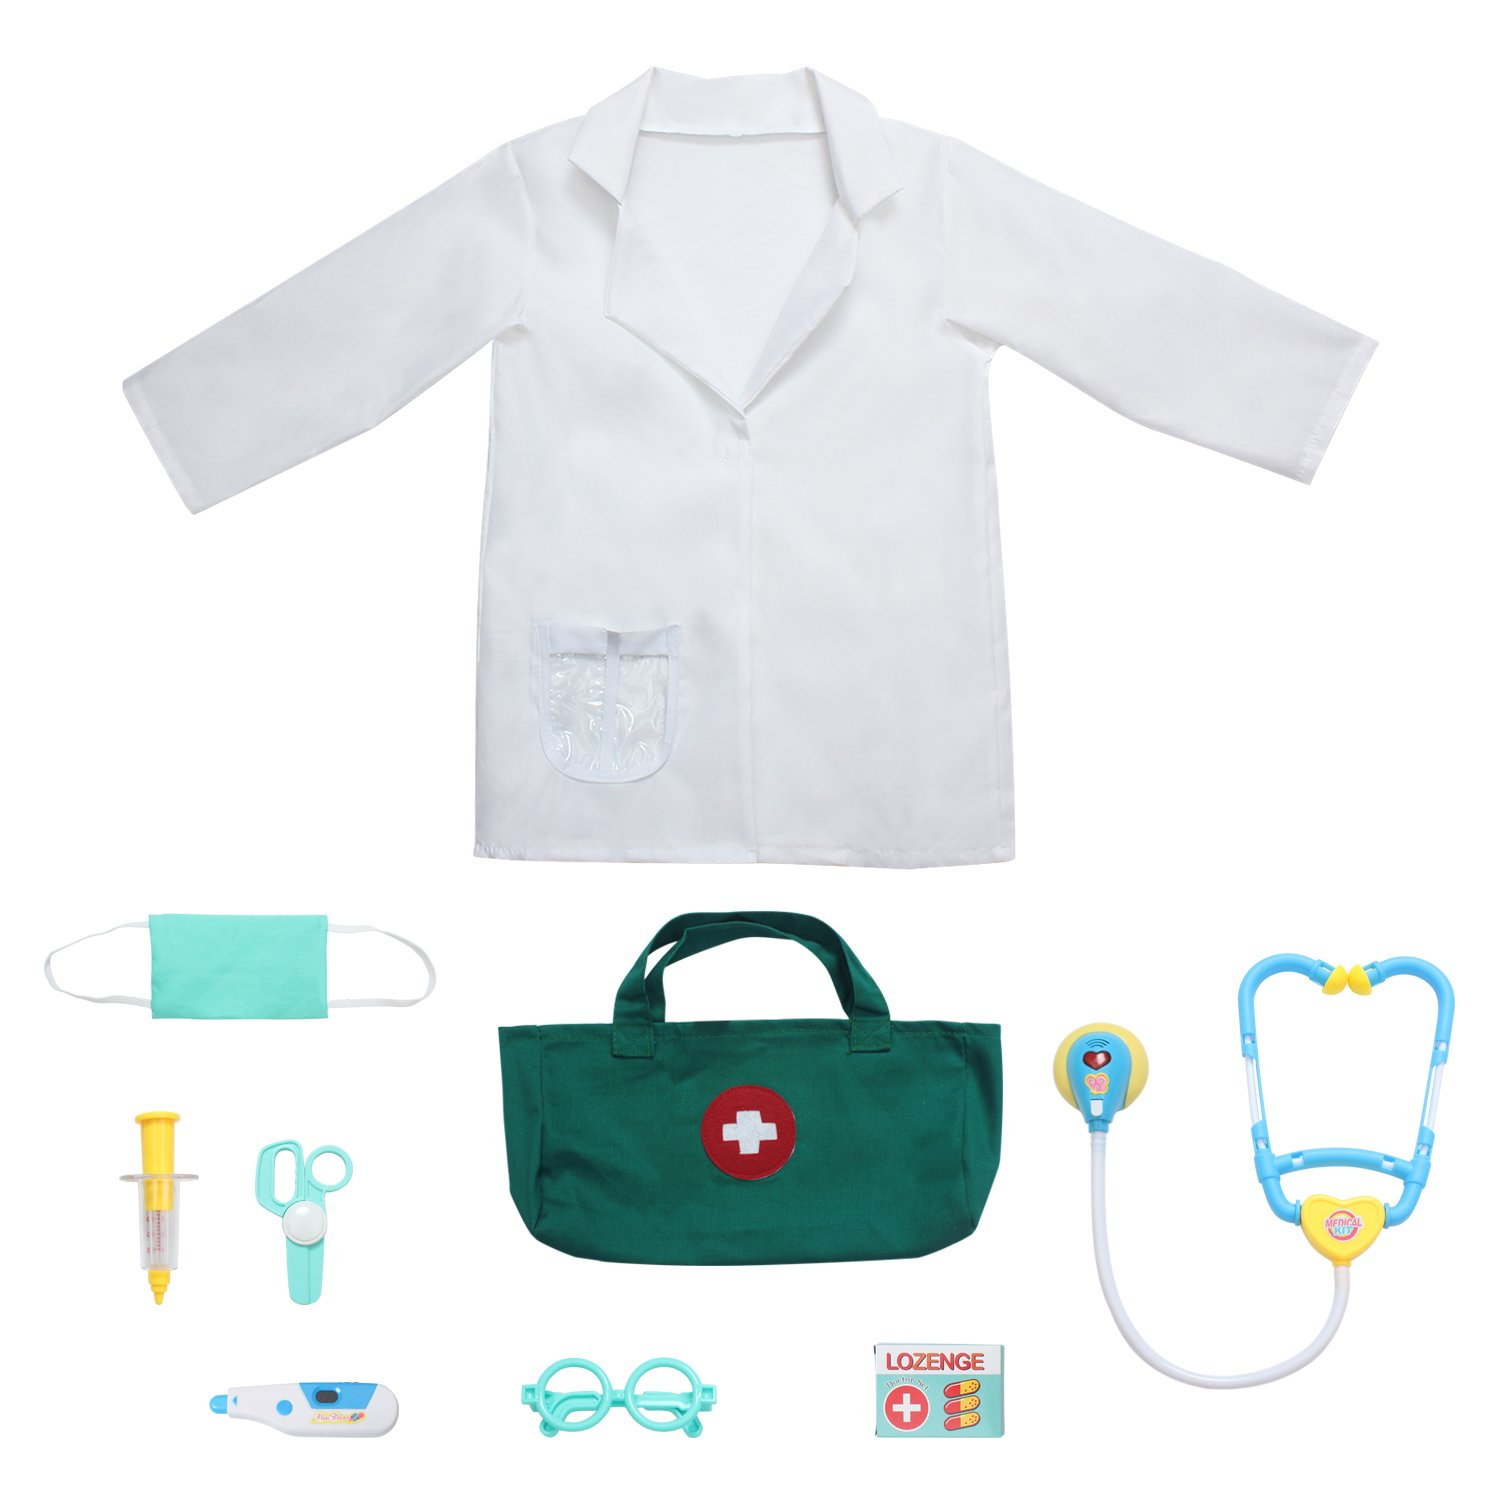 fedio 9Pcs Kids Doctor Costume Dress up Role Play Set with Doctor Lab Coat,Mask and Accessories for Toddlers Ages 3-6